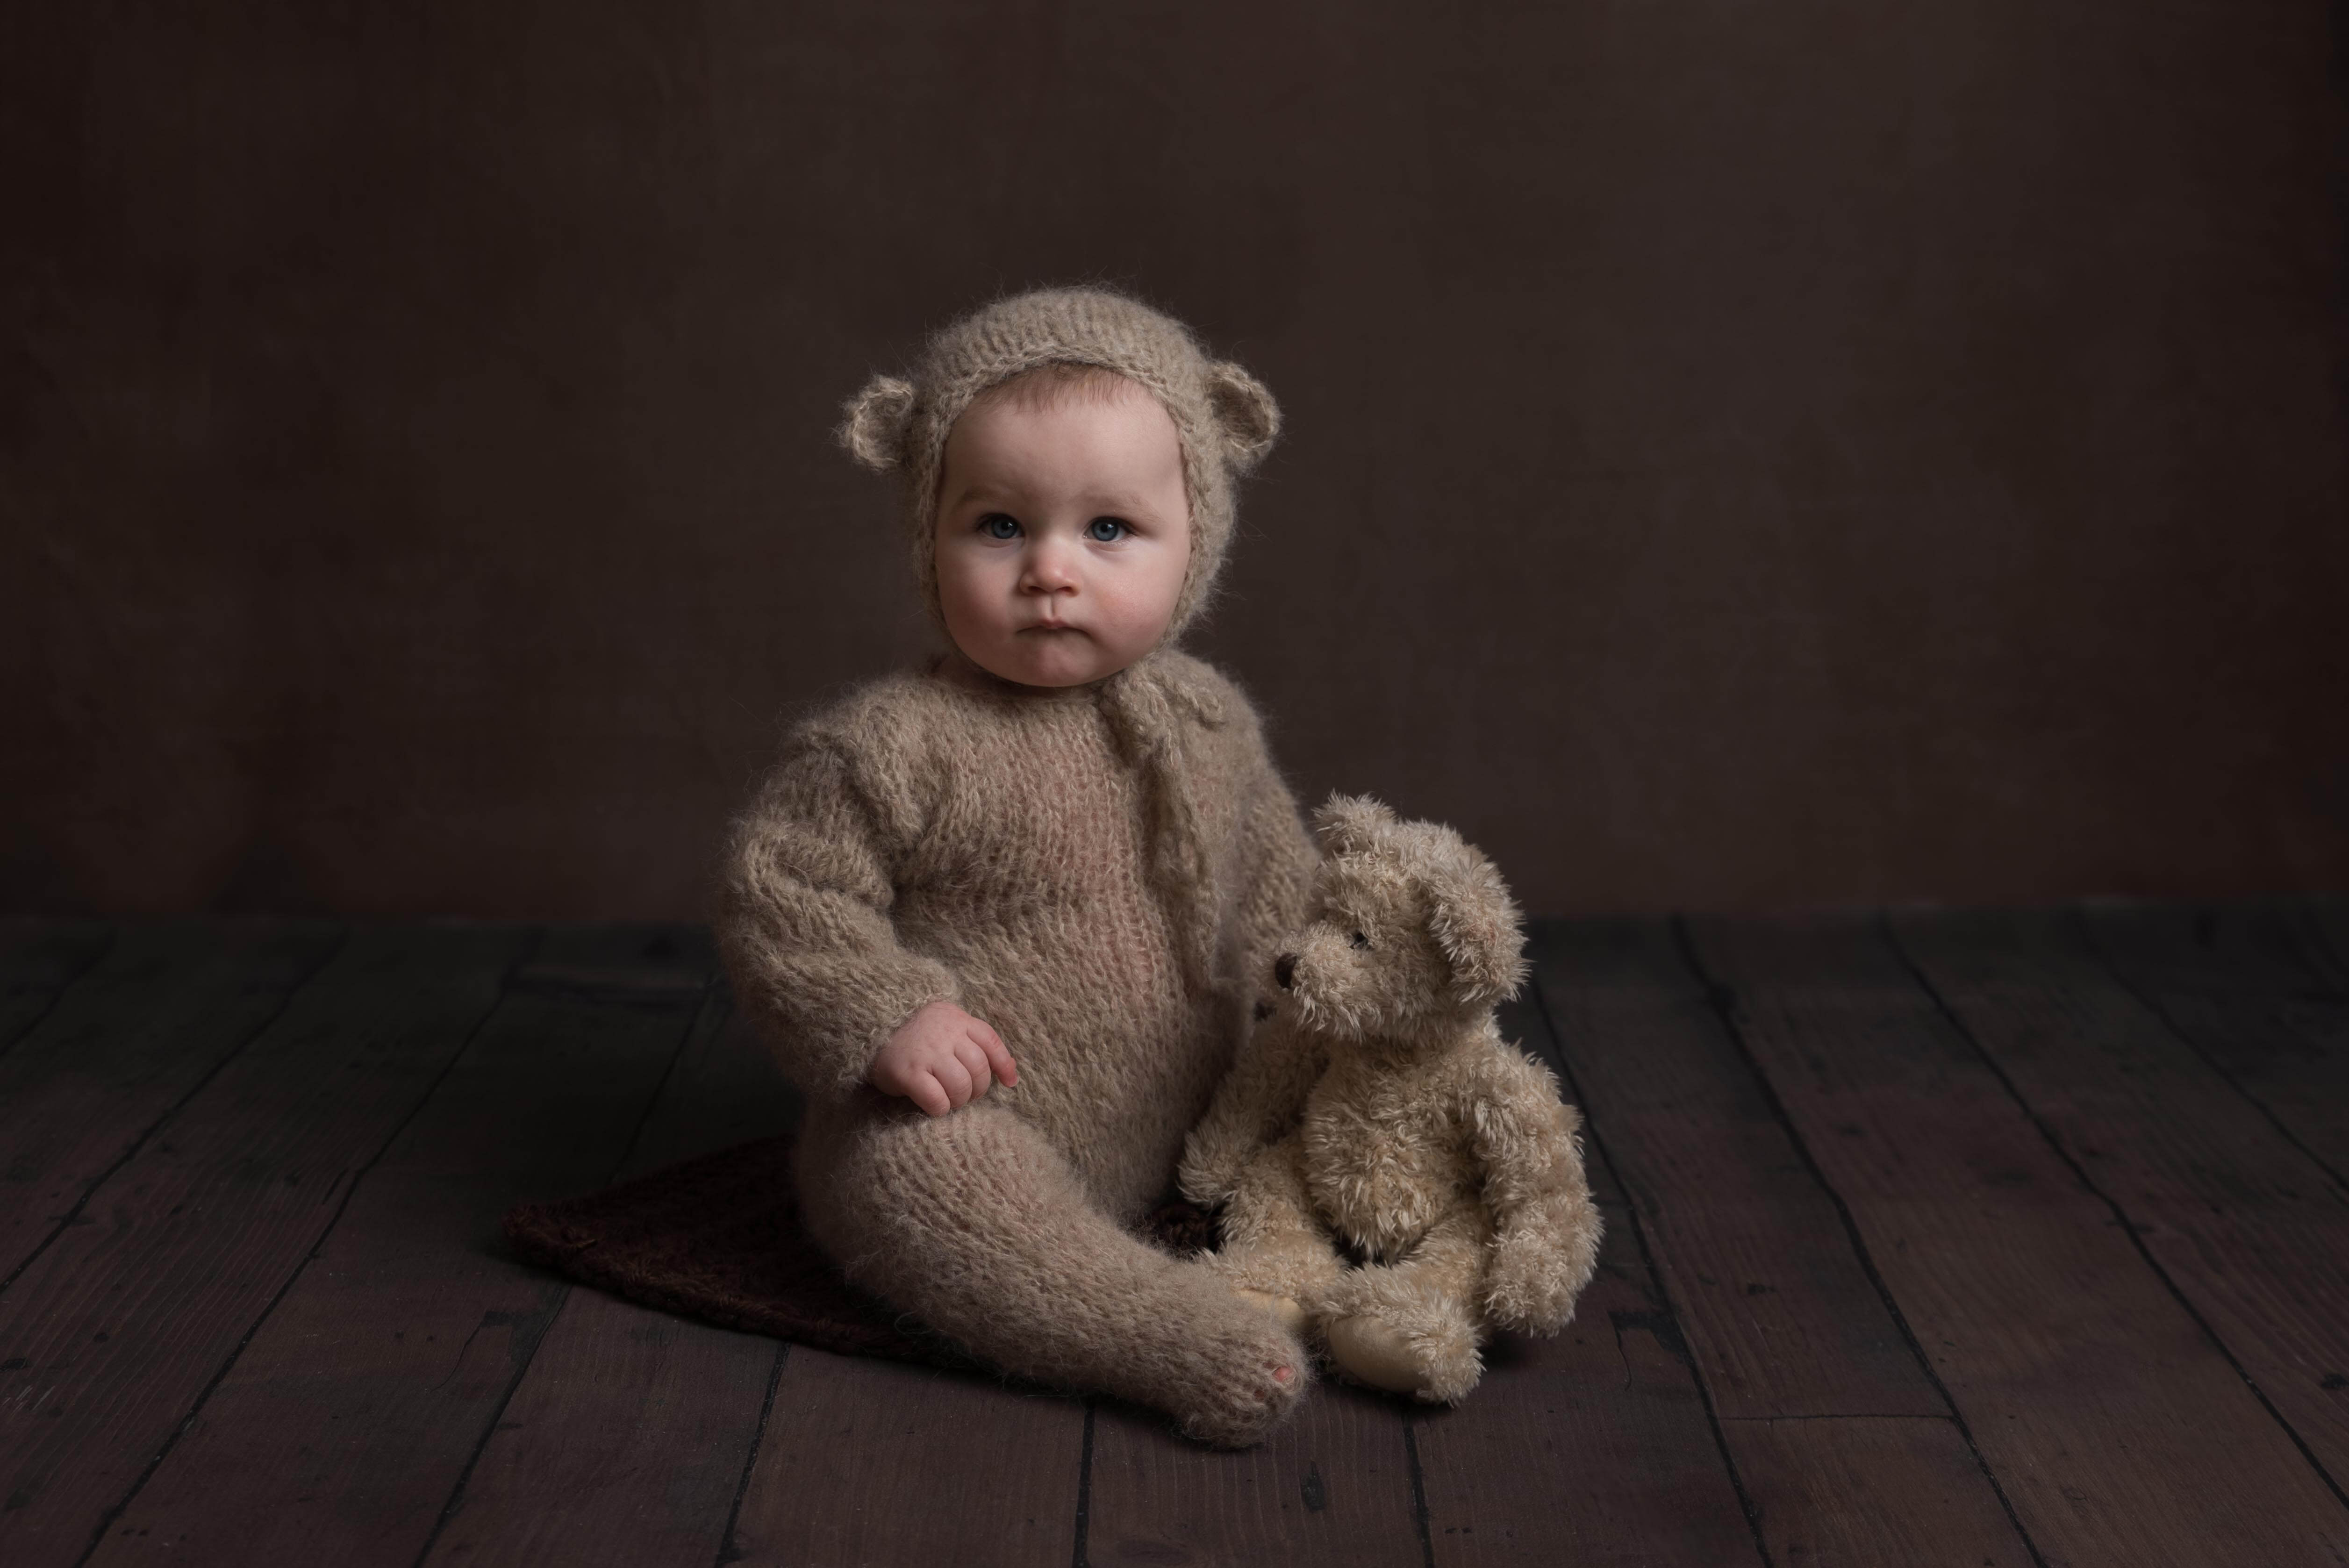 Slice of Life Little Sitters Session Gallery - Baby wearing a teddy bear onesie holding a teddy bear